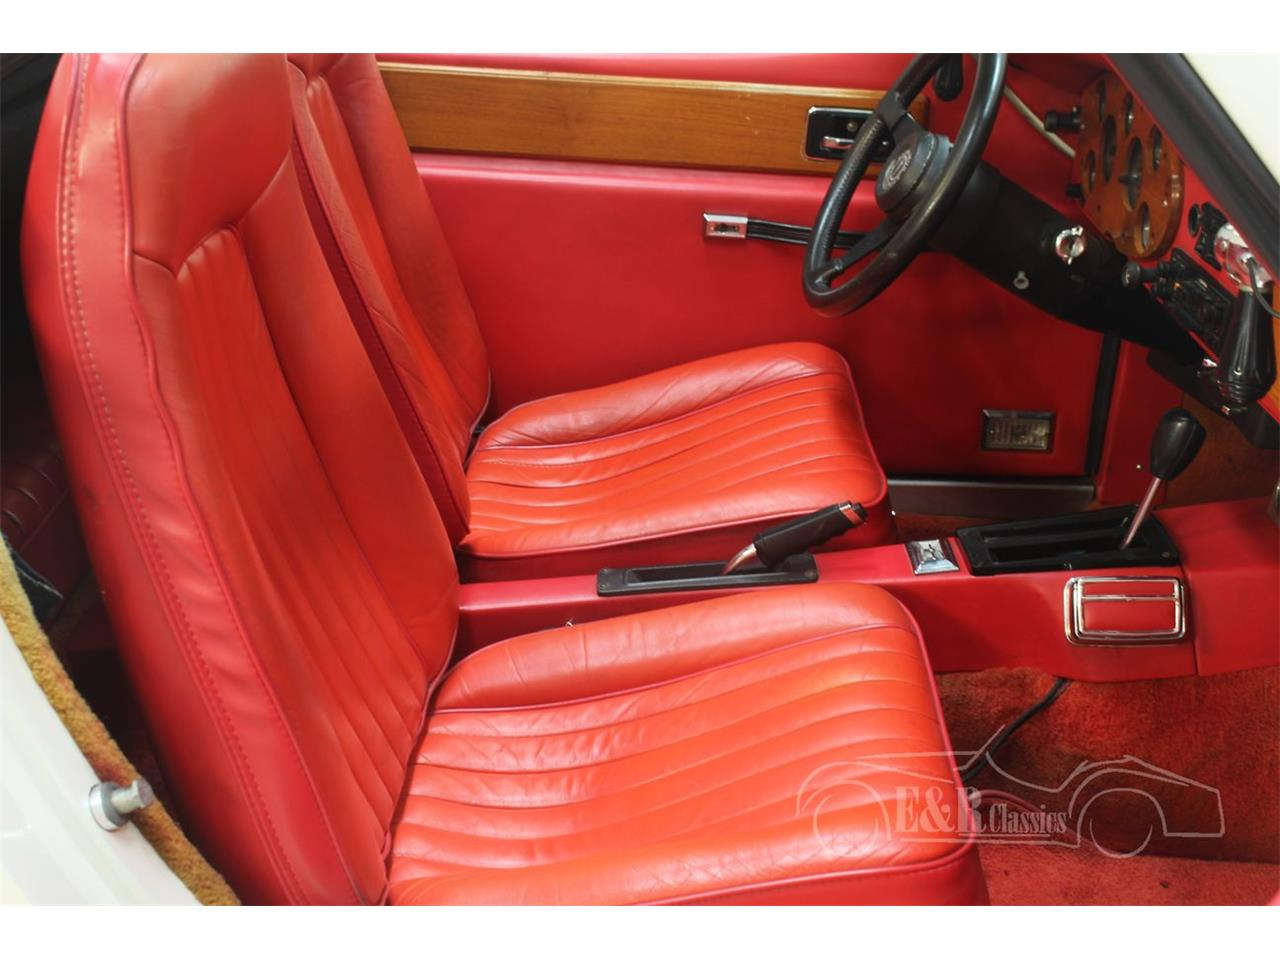 Large Picture of 1982 Excalibur Series IV Phaeton located in Waalwijk noord brabant - $78,450.00 Offered by E & R Classics - Q3GF